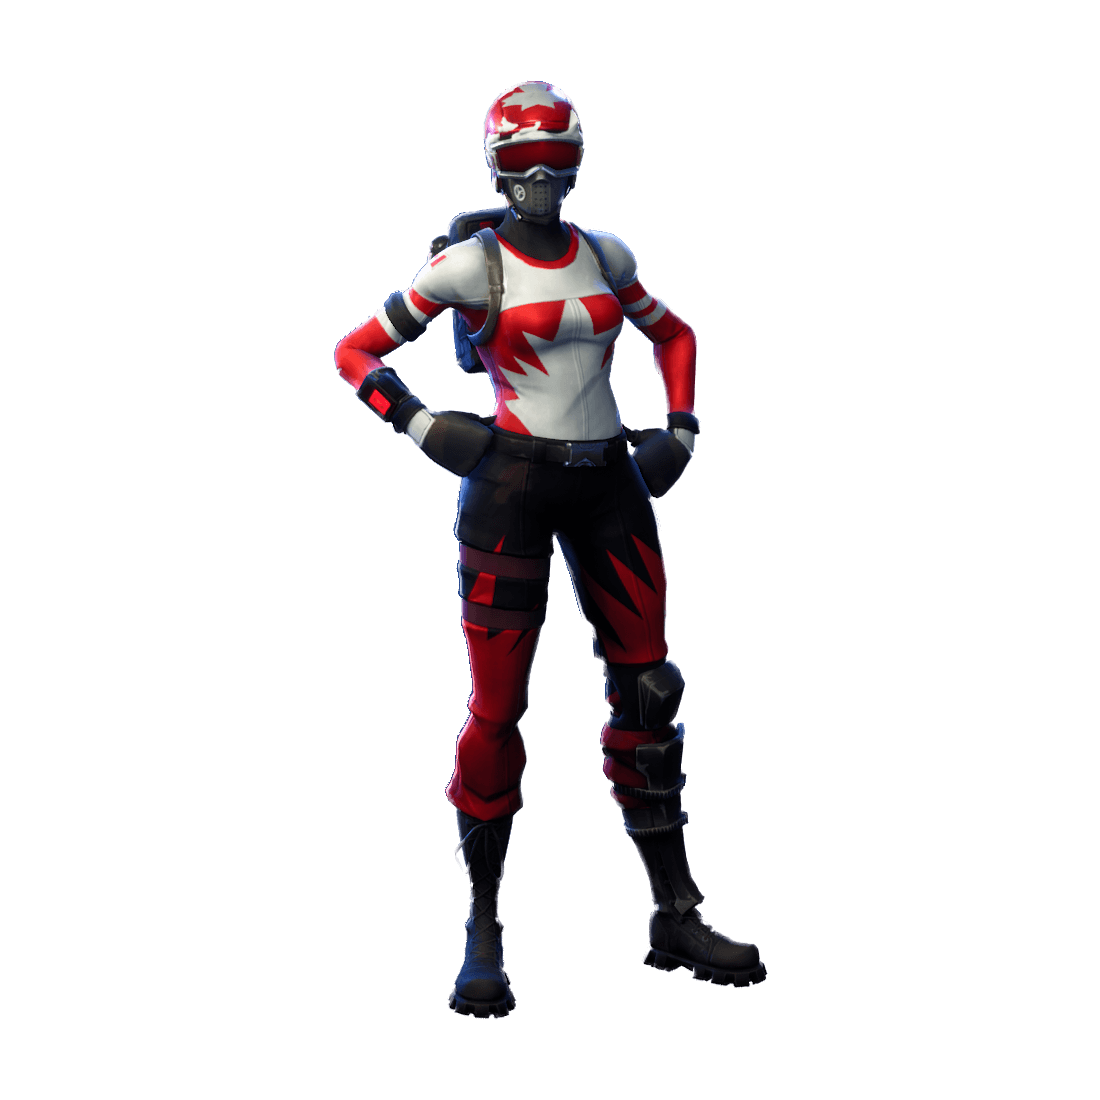 Fortnite Mogul Master (CAN) PNG Image - PurePNG | Free transparent ...